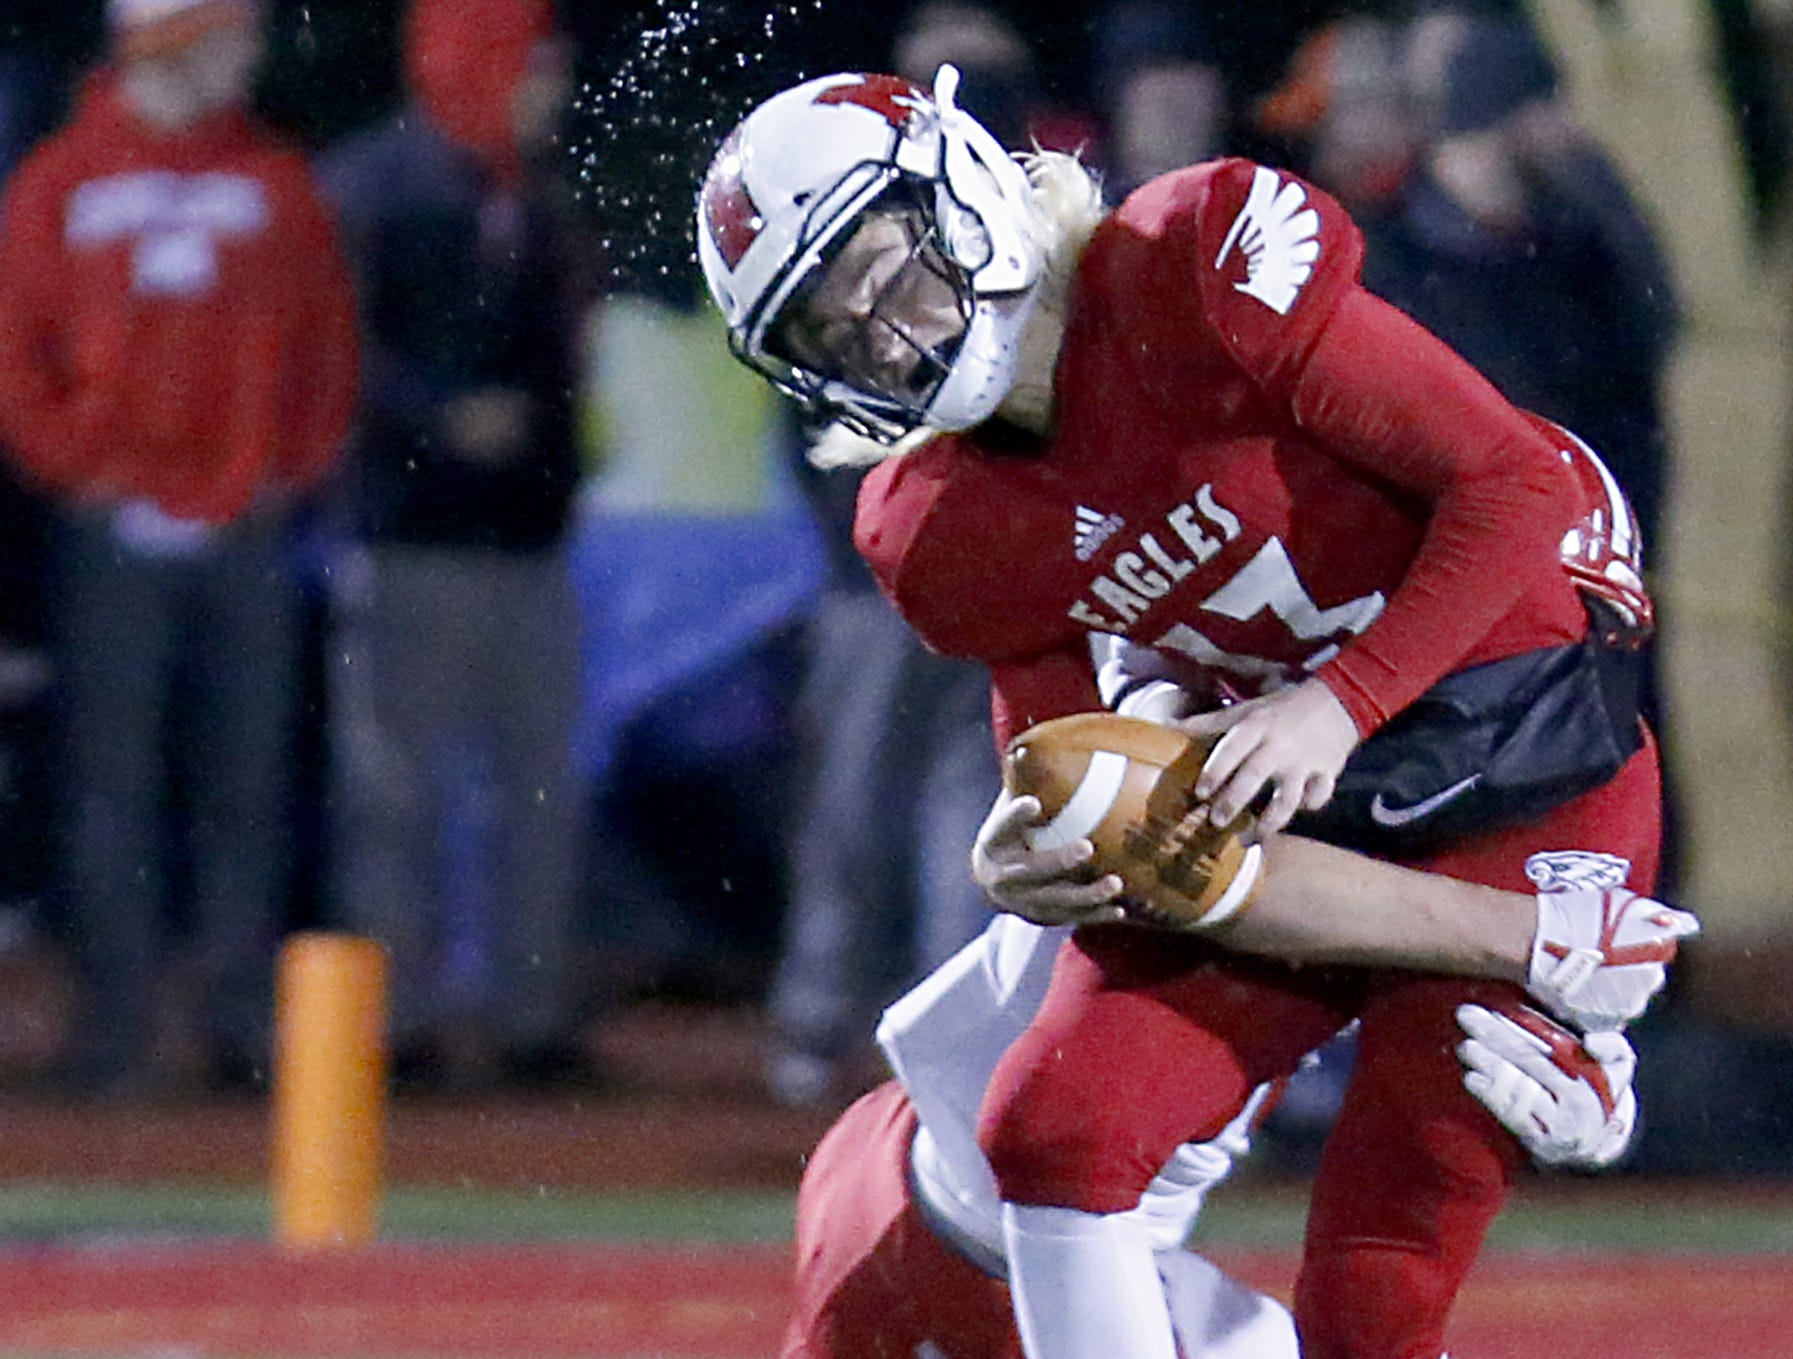 Milford quarterback Hunter Johnson is sacked by Fairfield's Erick All during their Division I playoff game at Eagle Stadium in Milford Friday, Nov. 2, 2018.